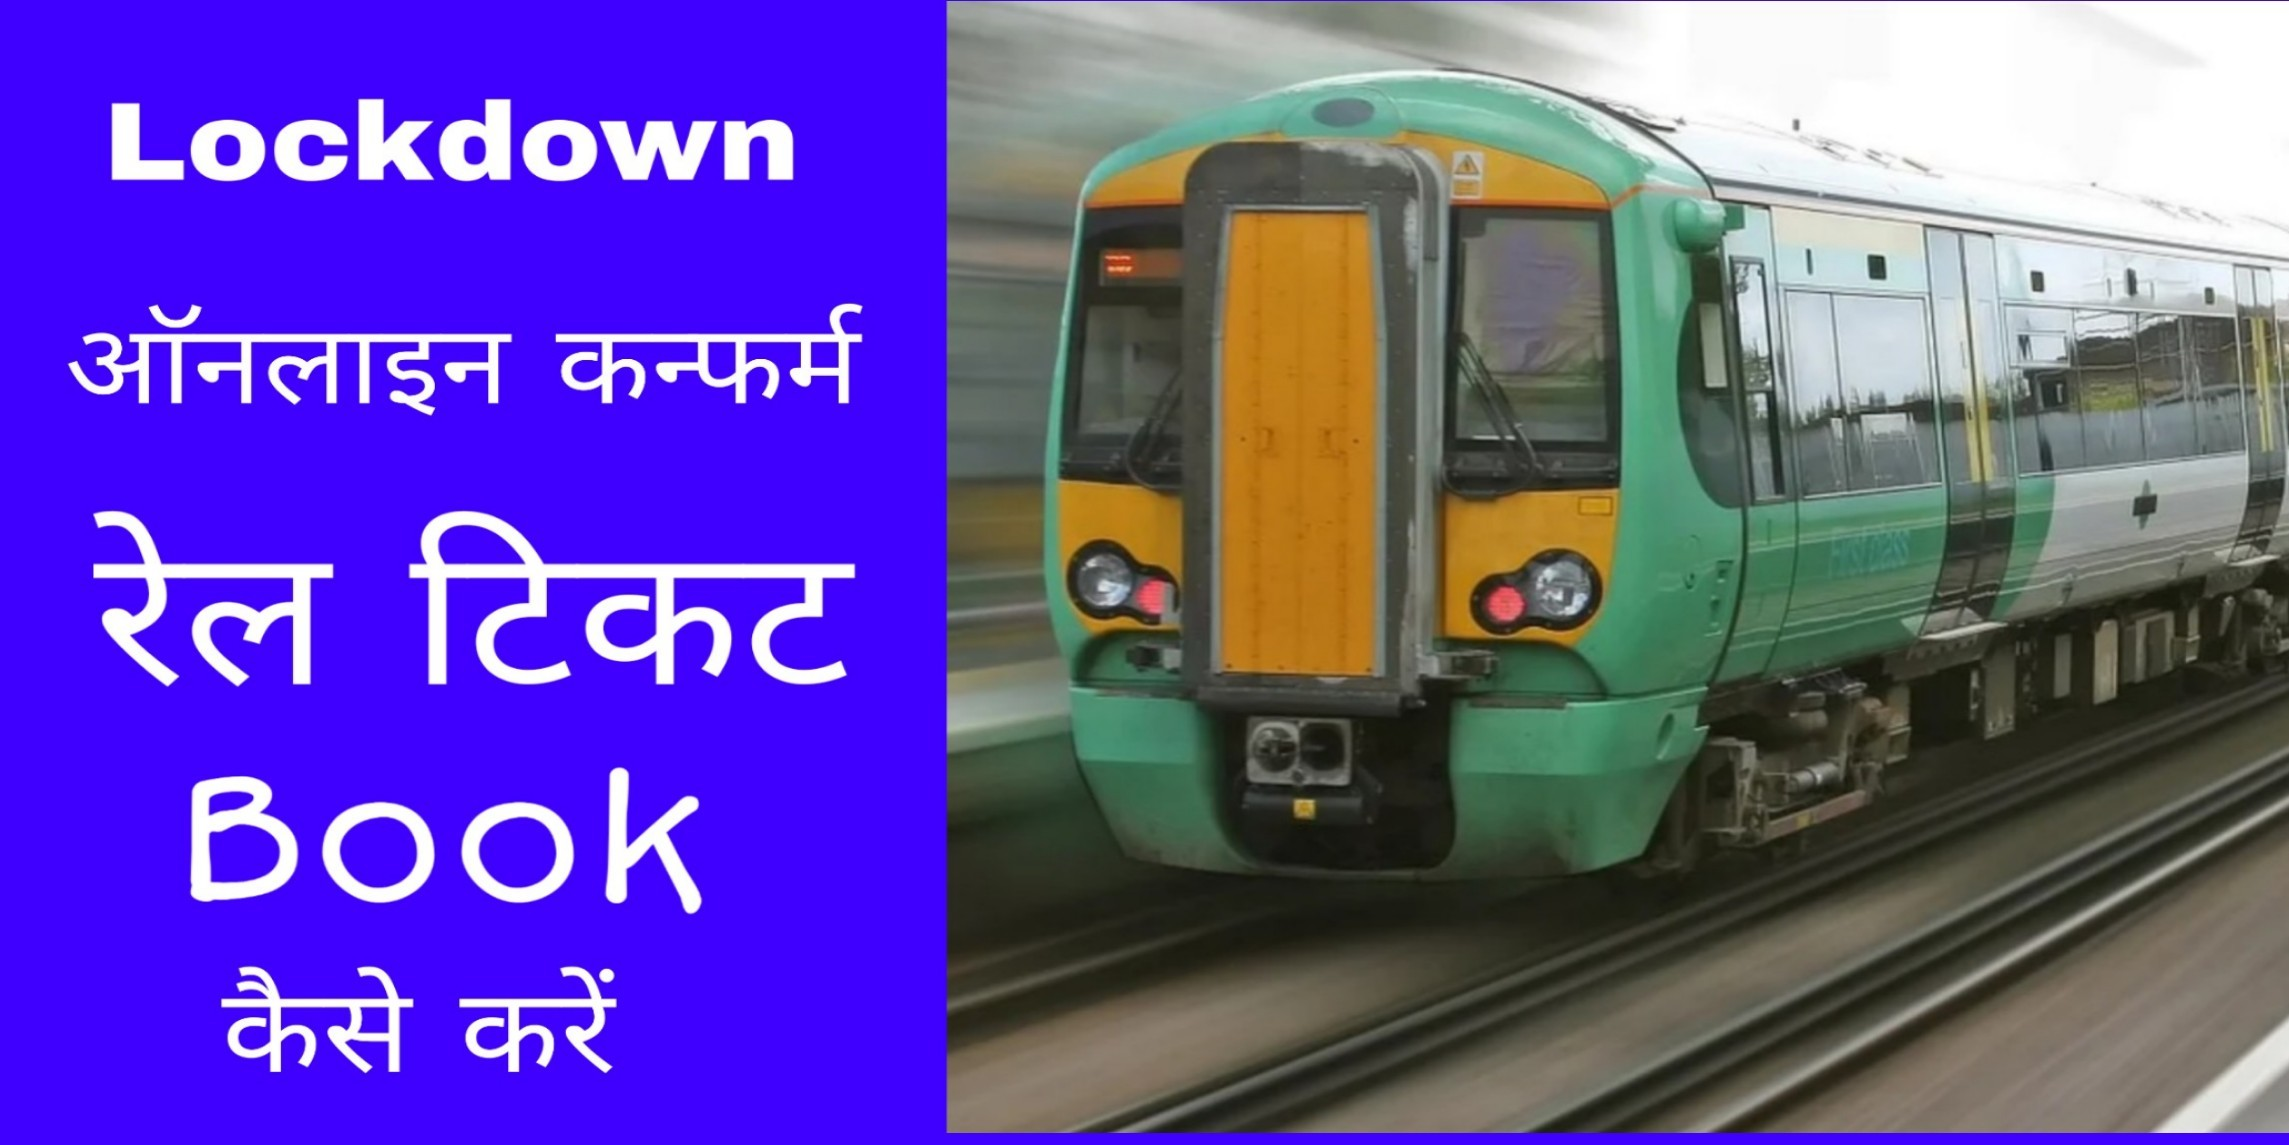 Lockdown Me Online Confirm Rail Ticket Kaise Paye – IRCTC Ticekt Booking